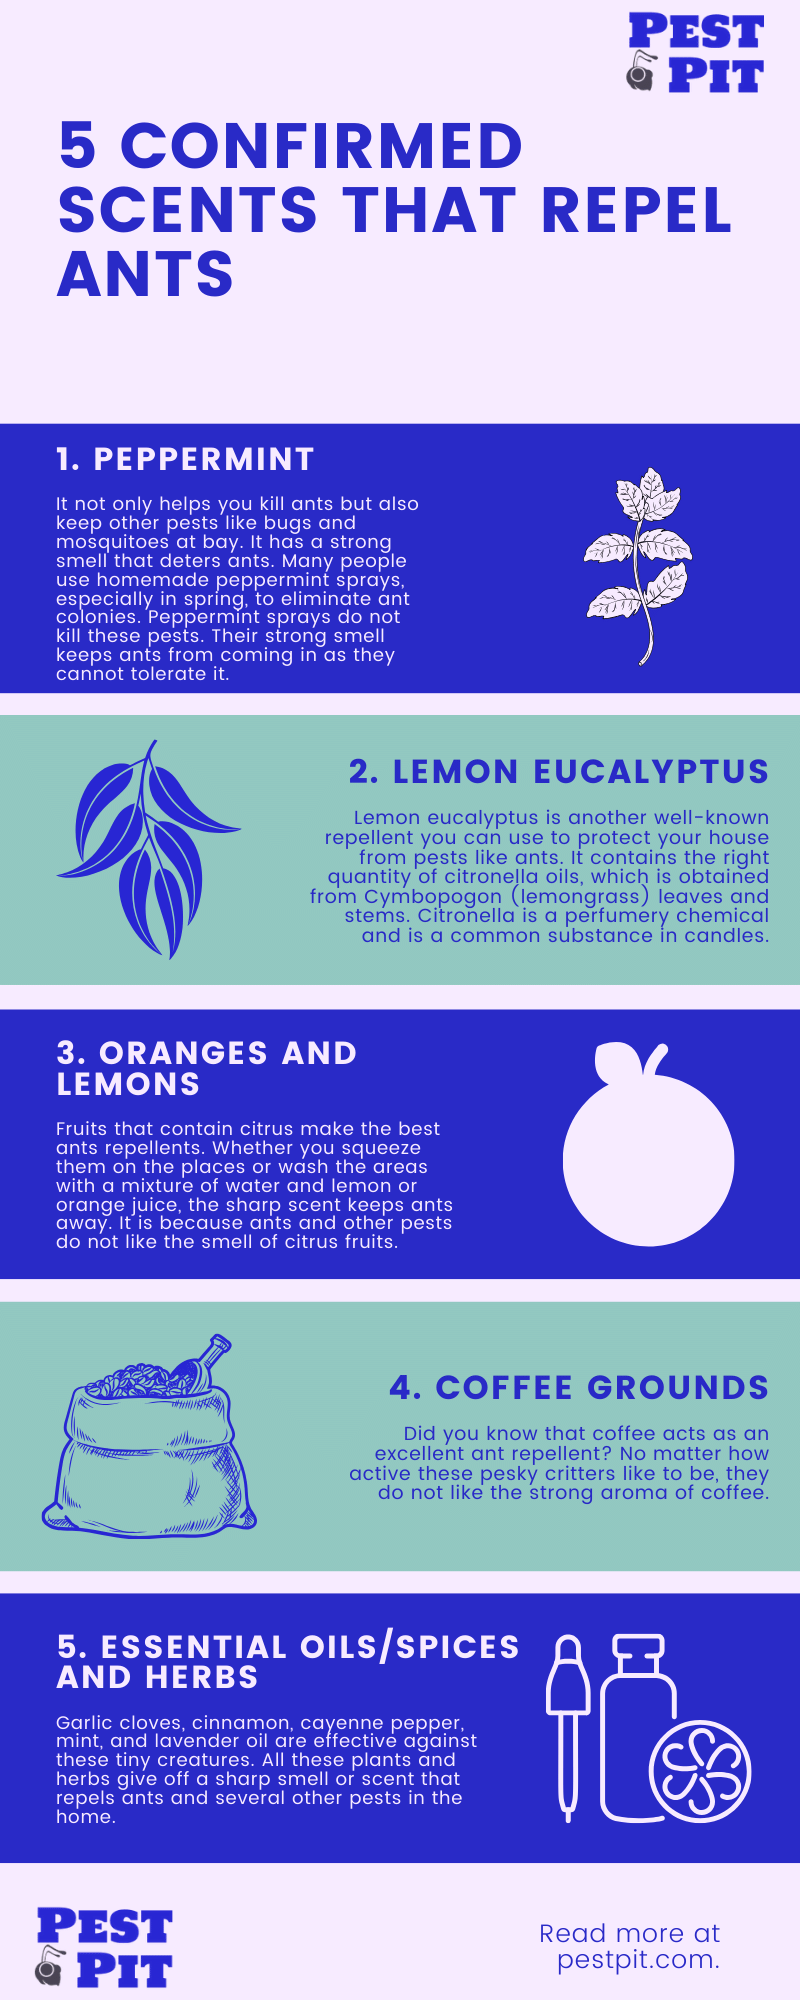 5 Confirmed Scents That Repel Ants Infographic